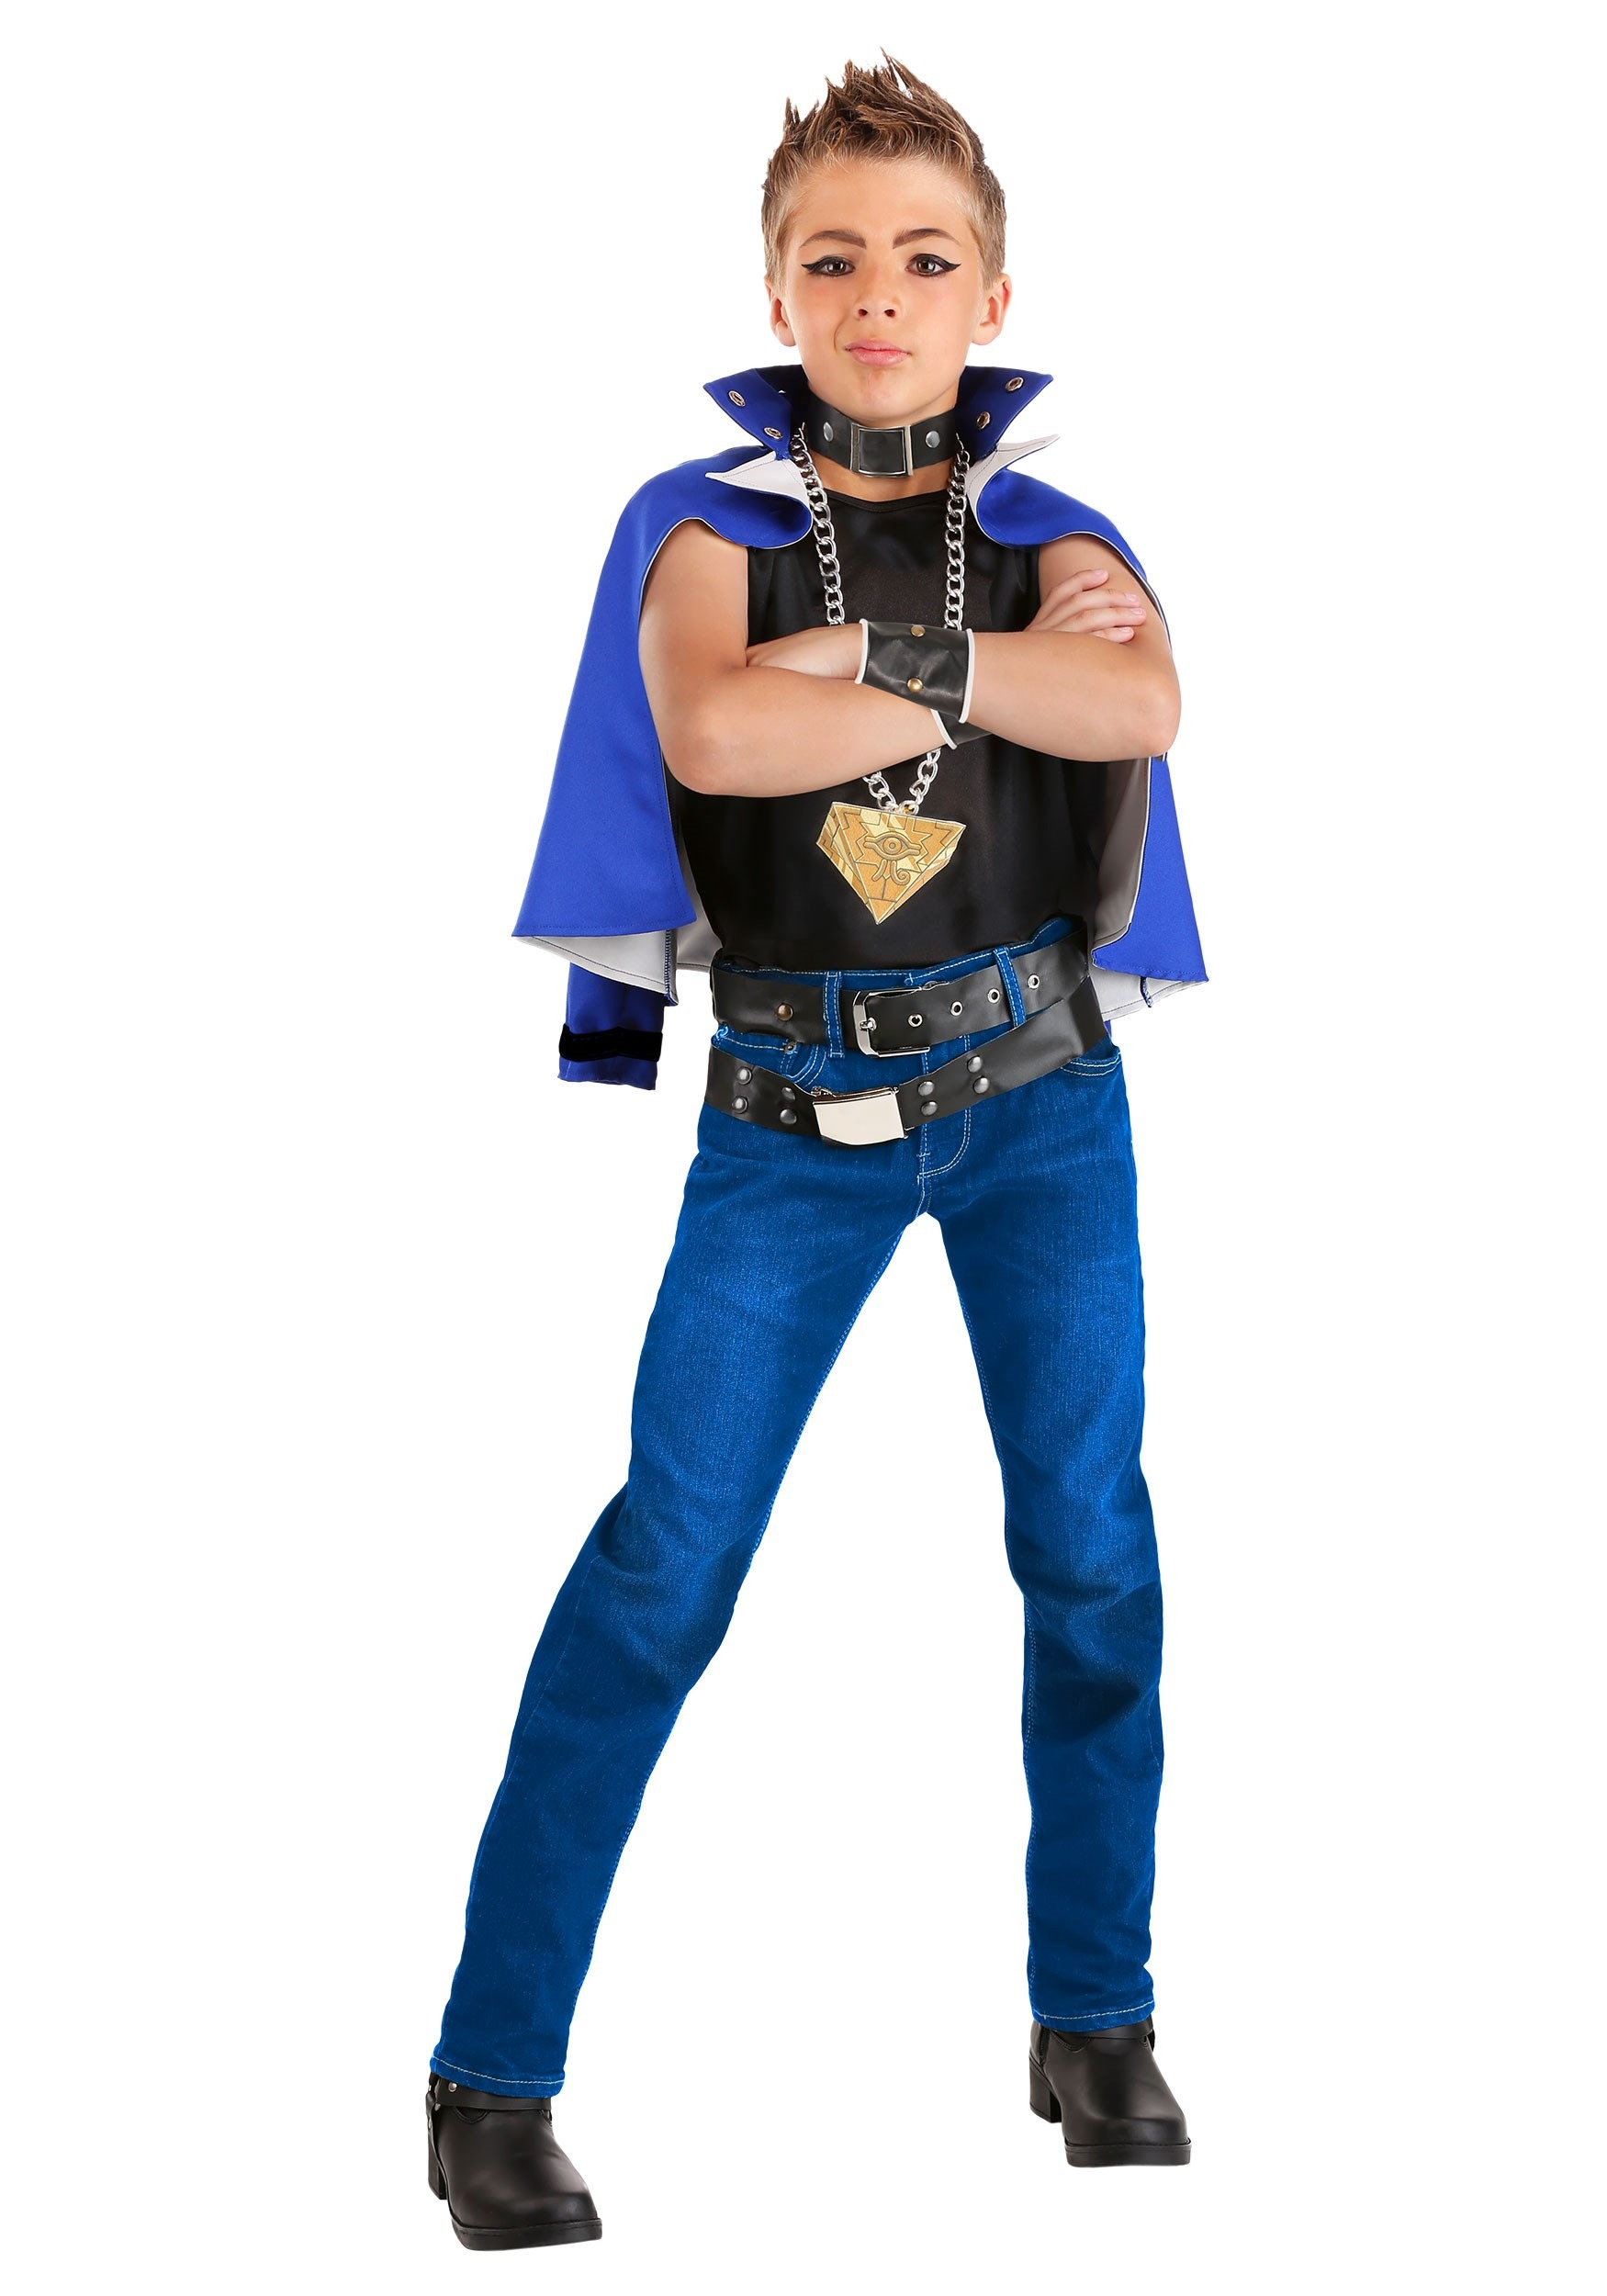 YuGi Boy's Costume Yu-Gi-Oh | Anime Costume for Boys